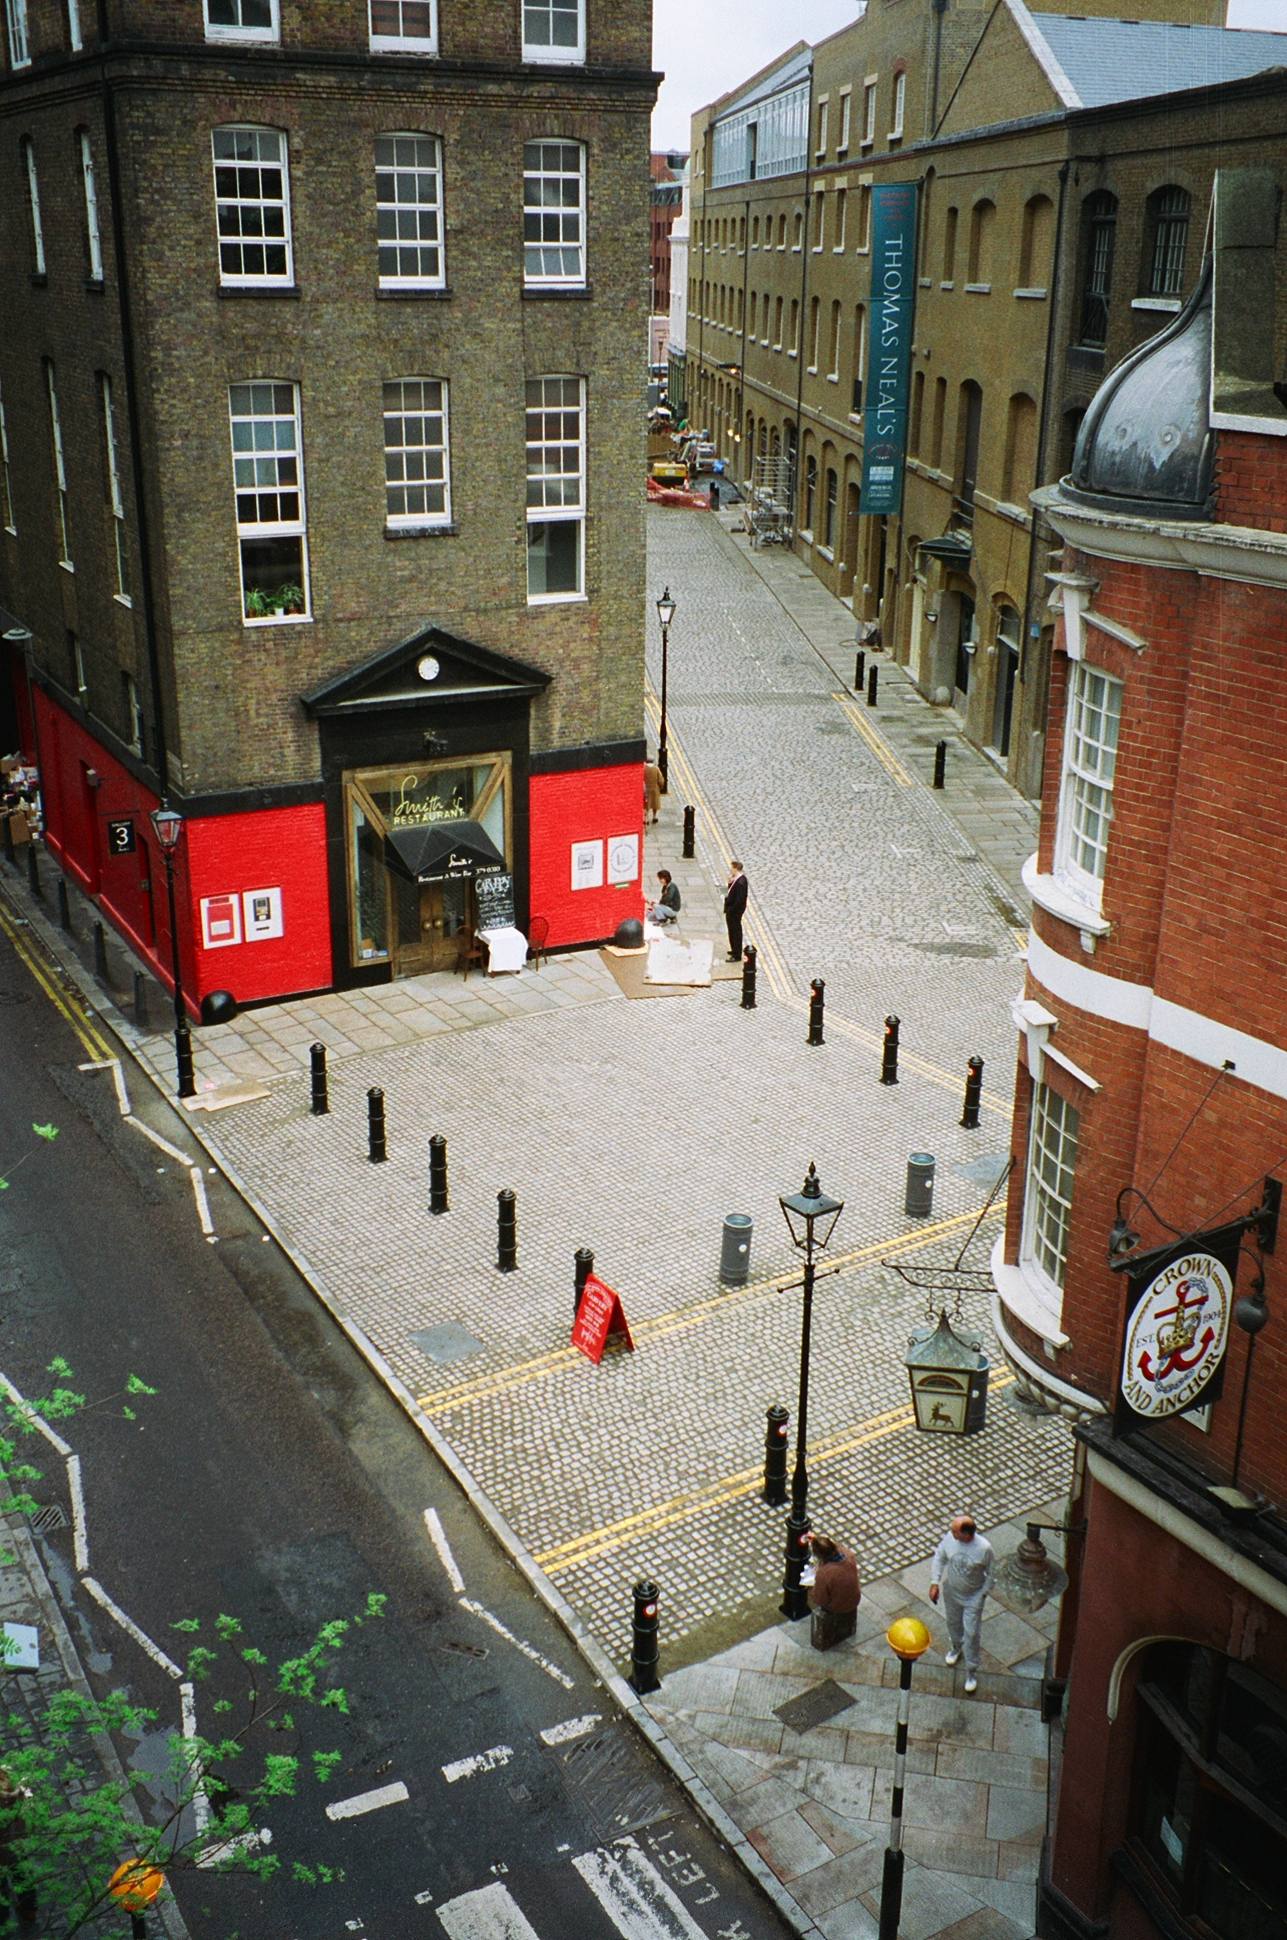 1984: Neal Street and Earlham Street east almost completed. Skilled painting of the Golden Hind motif on the street furniture underway.